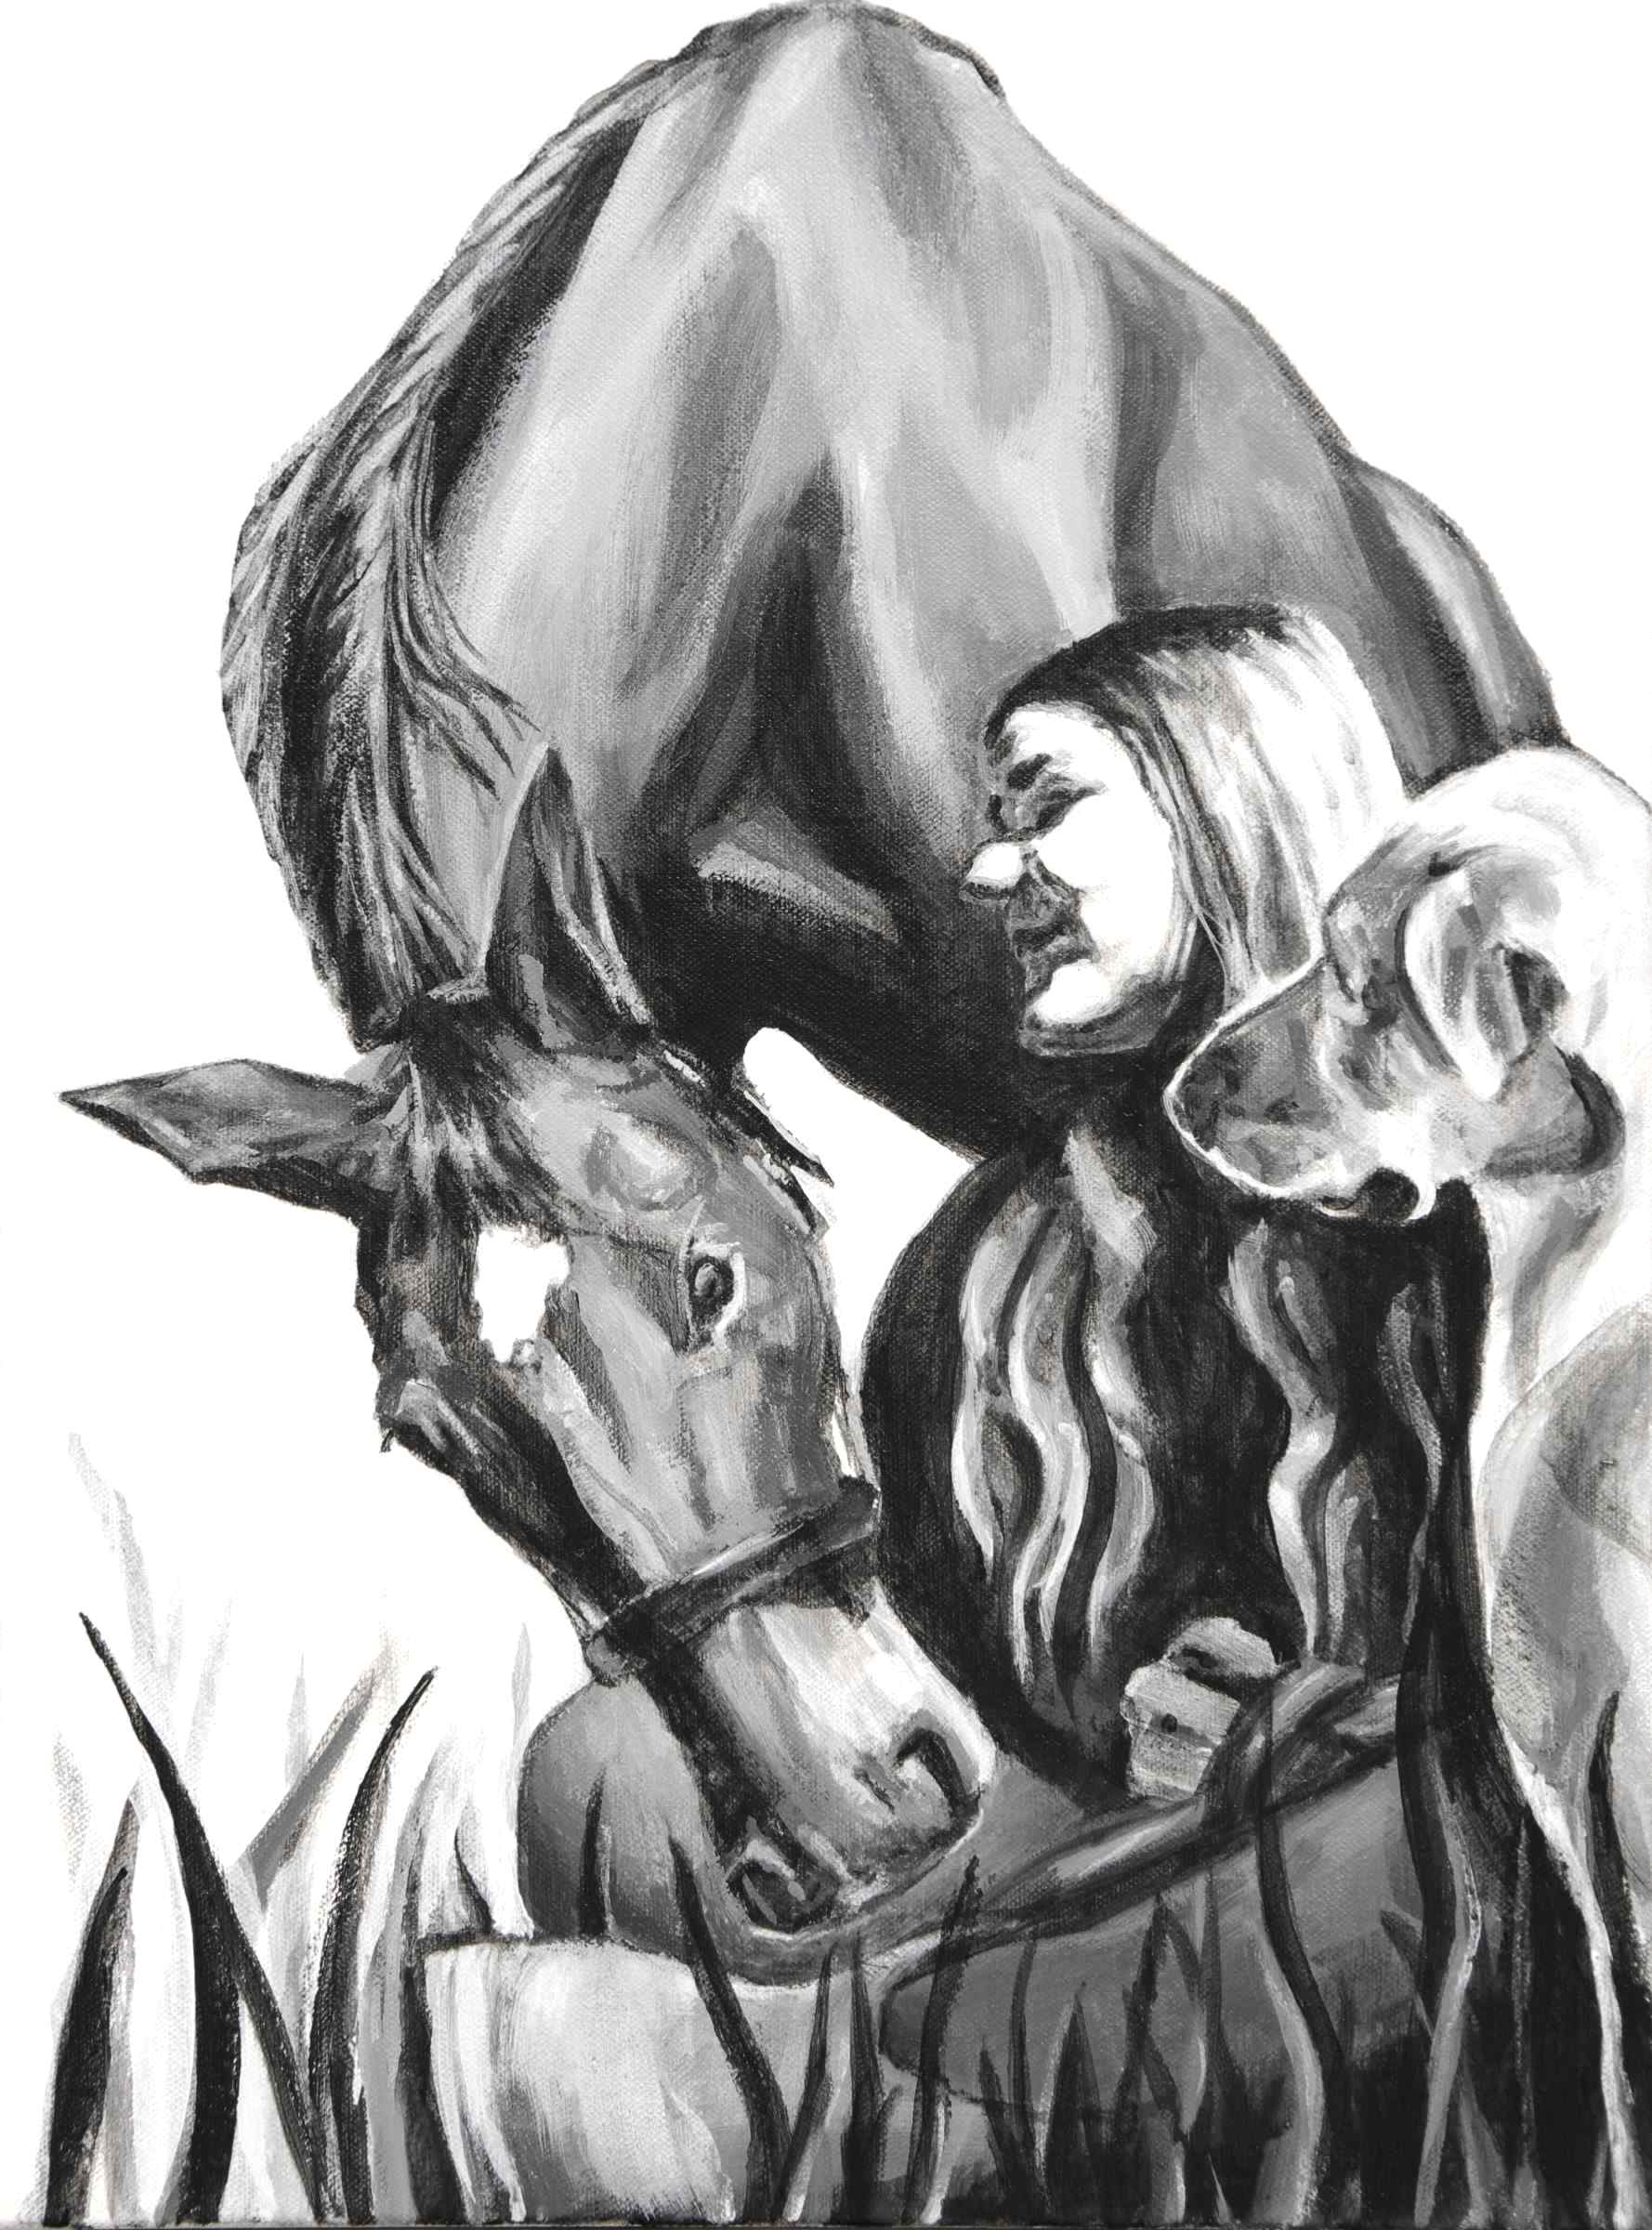 "A commissioned portrait, in black and white, of a woman, her horse and dog. The E3, (family portrait series,) 2018, acrylic on canvas, 16"" x 12"", Elizabeth Lisa Petrulis"